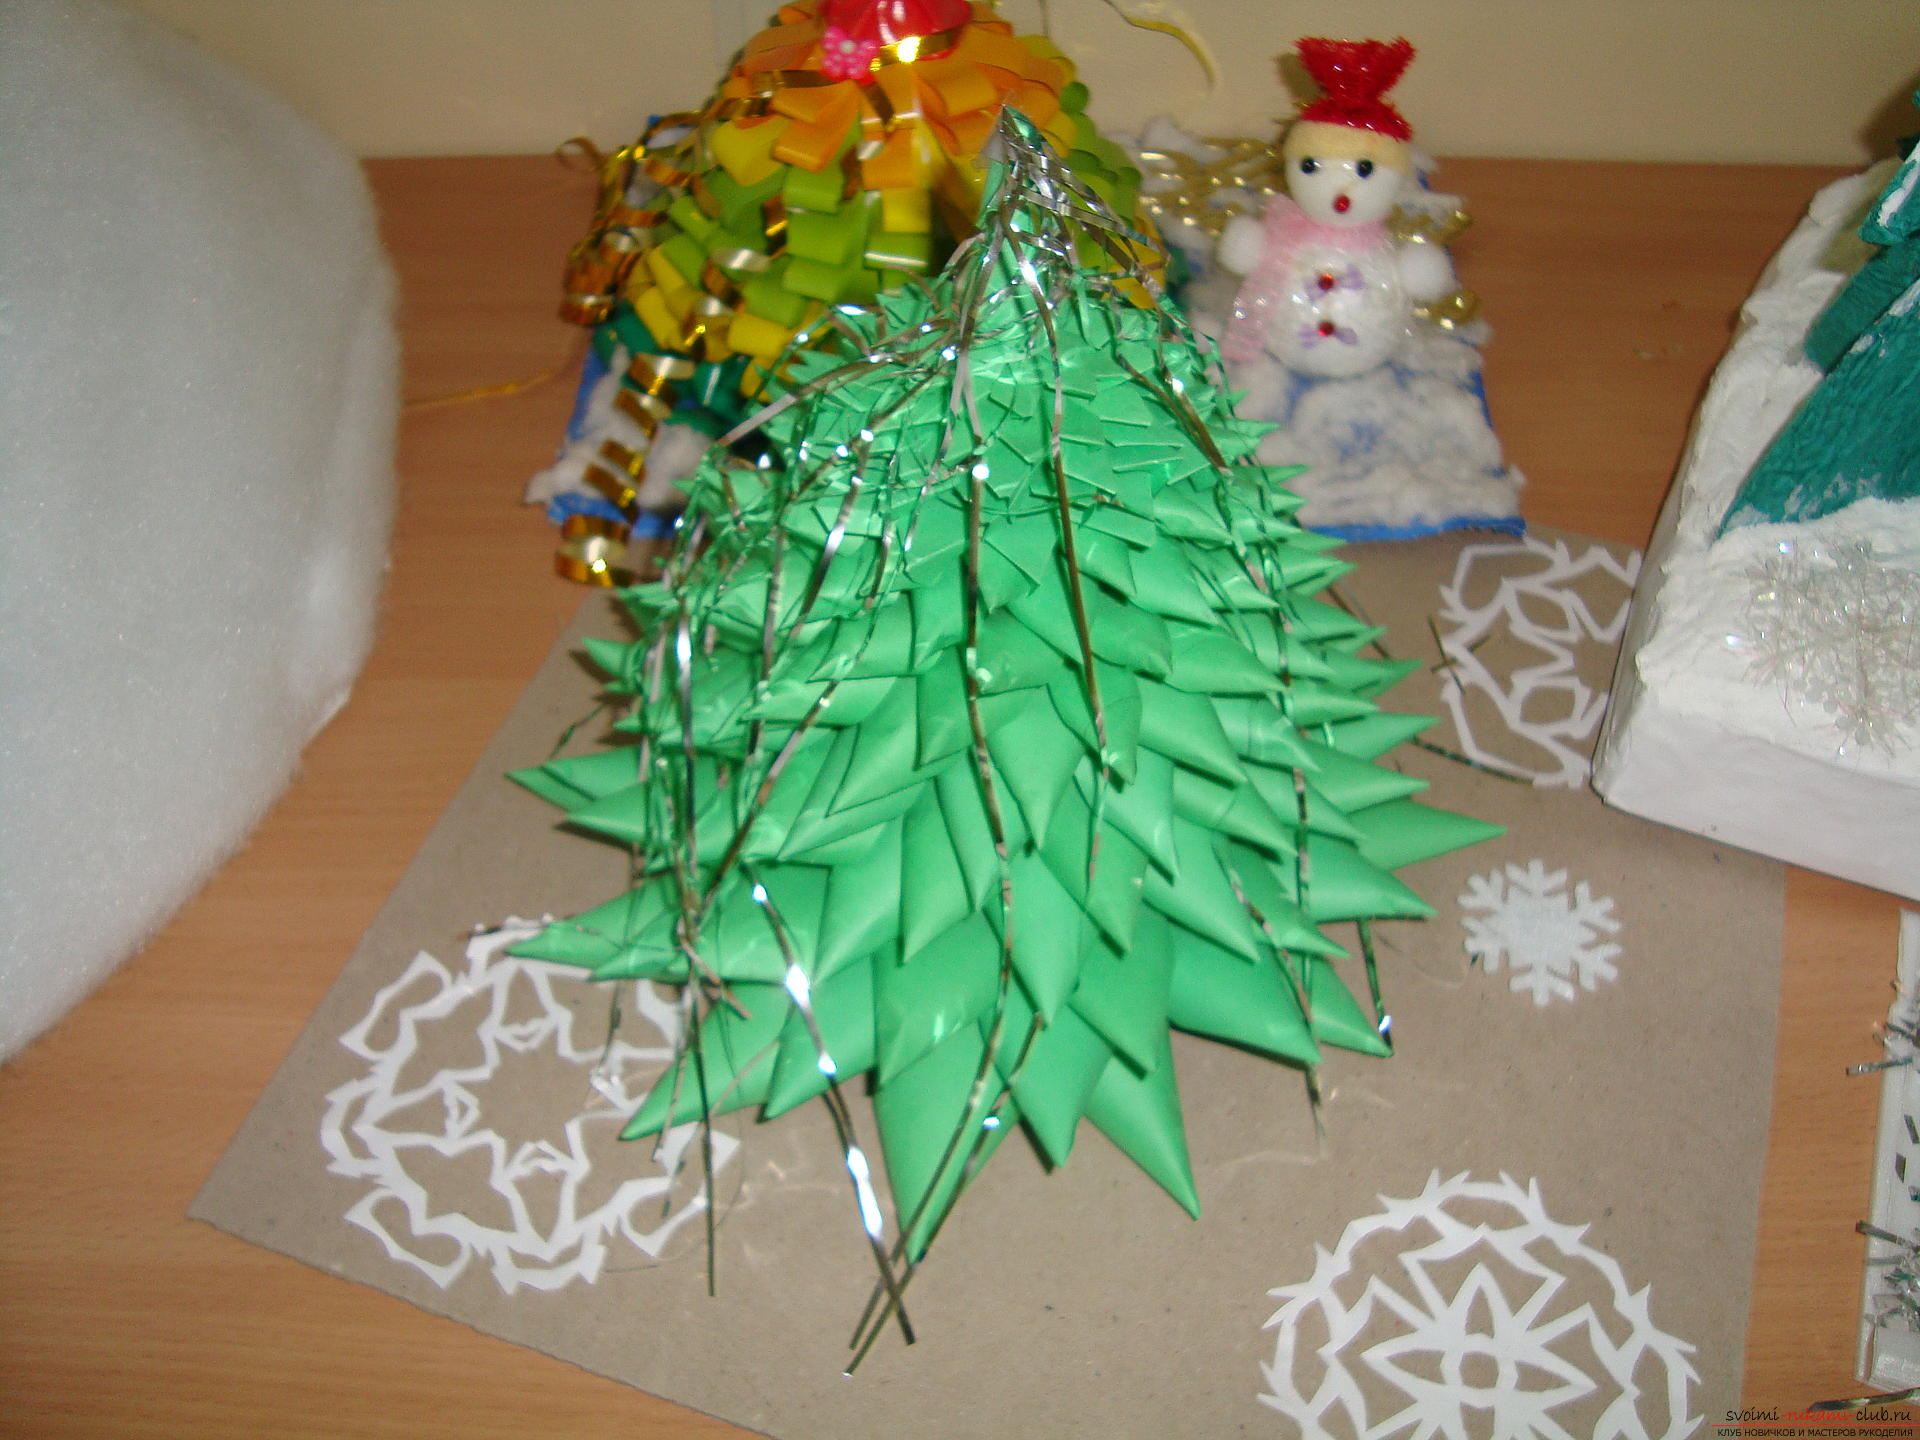 New Year snowflakes and Christmas toys with their own hands - master class origami